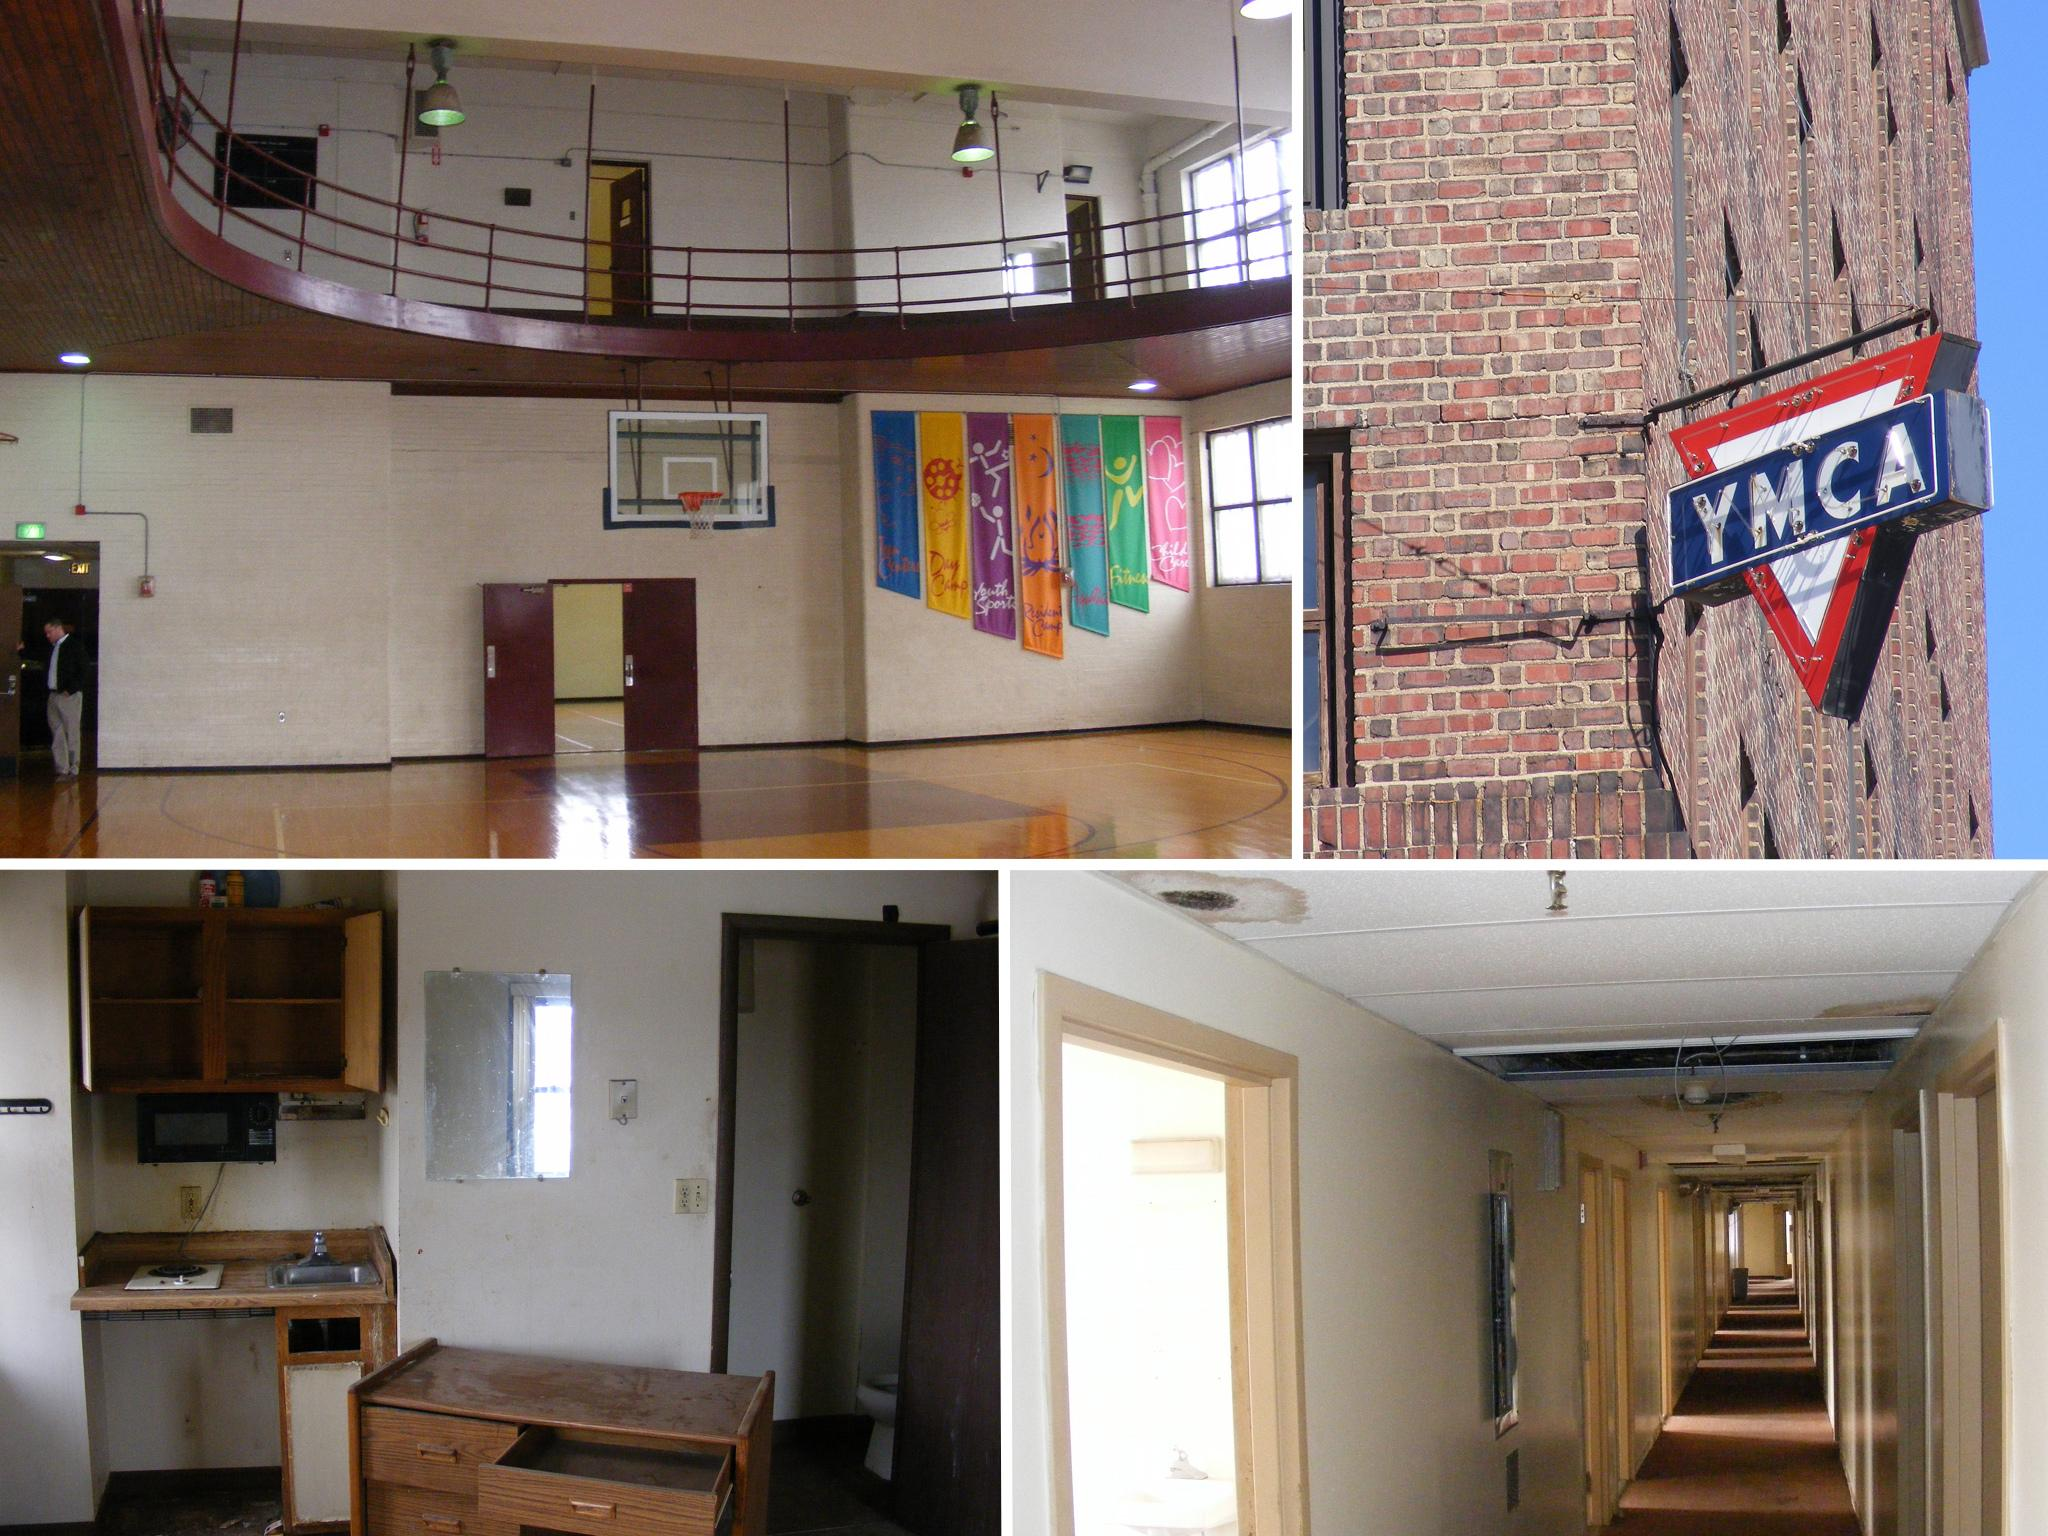 YMCA (Before) / ADDRESS: 1105 Elm Street (45202) / CREDIT: $3,389,328 / PREVIOUSLY: YMCA / Images courtesy of the Ohio Department of Taxation, CC by 2.0, with changes